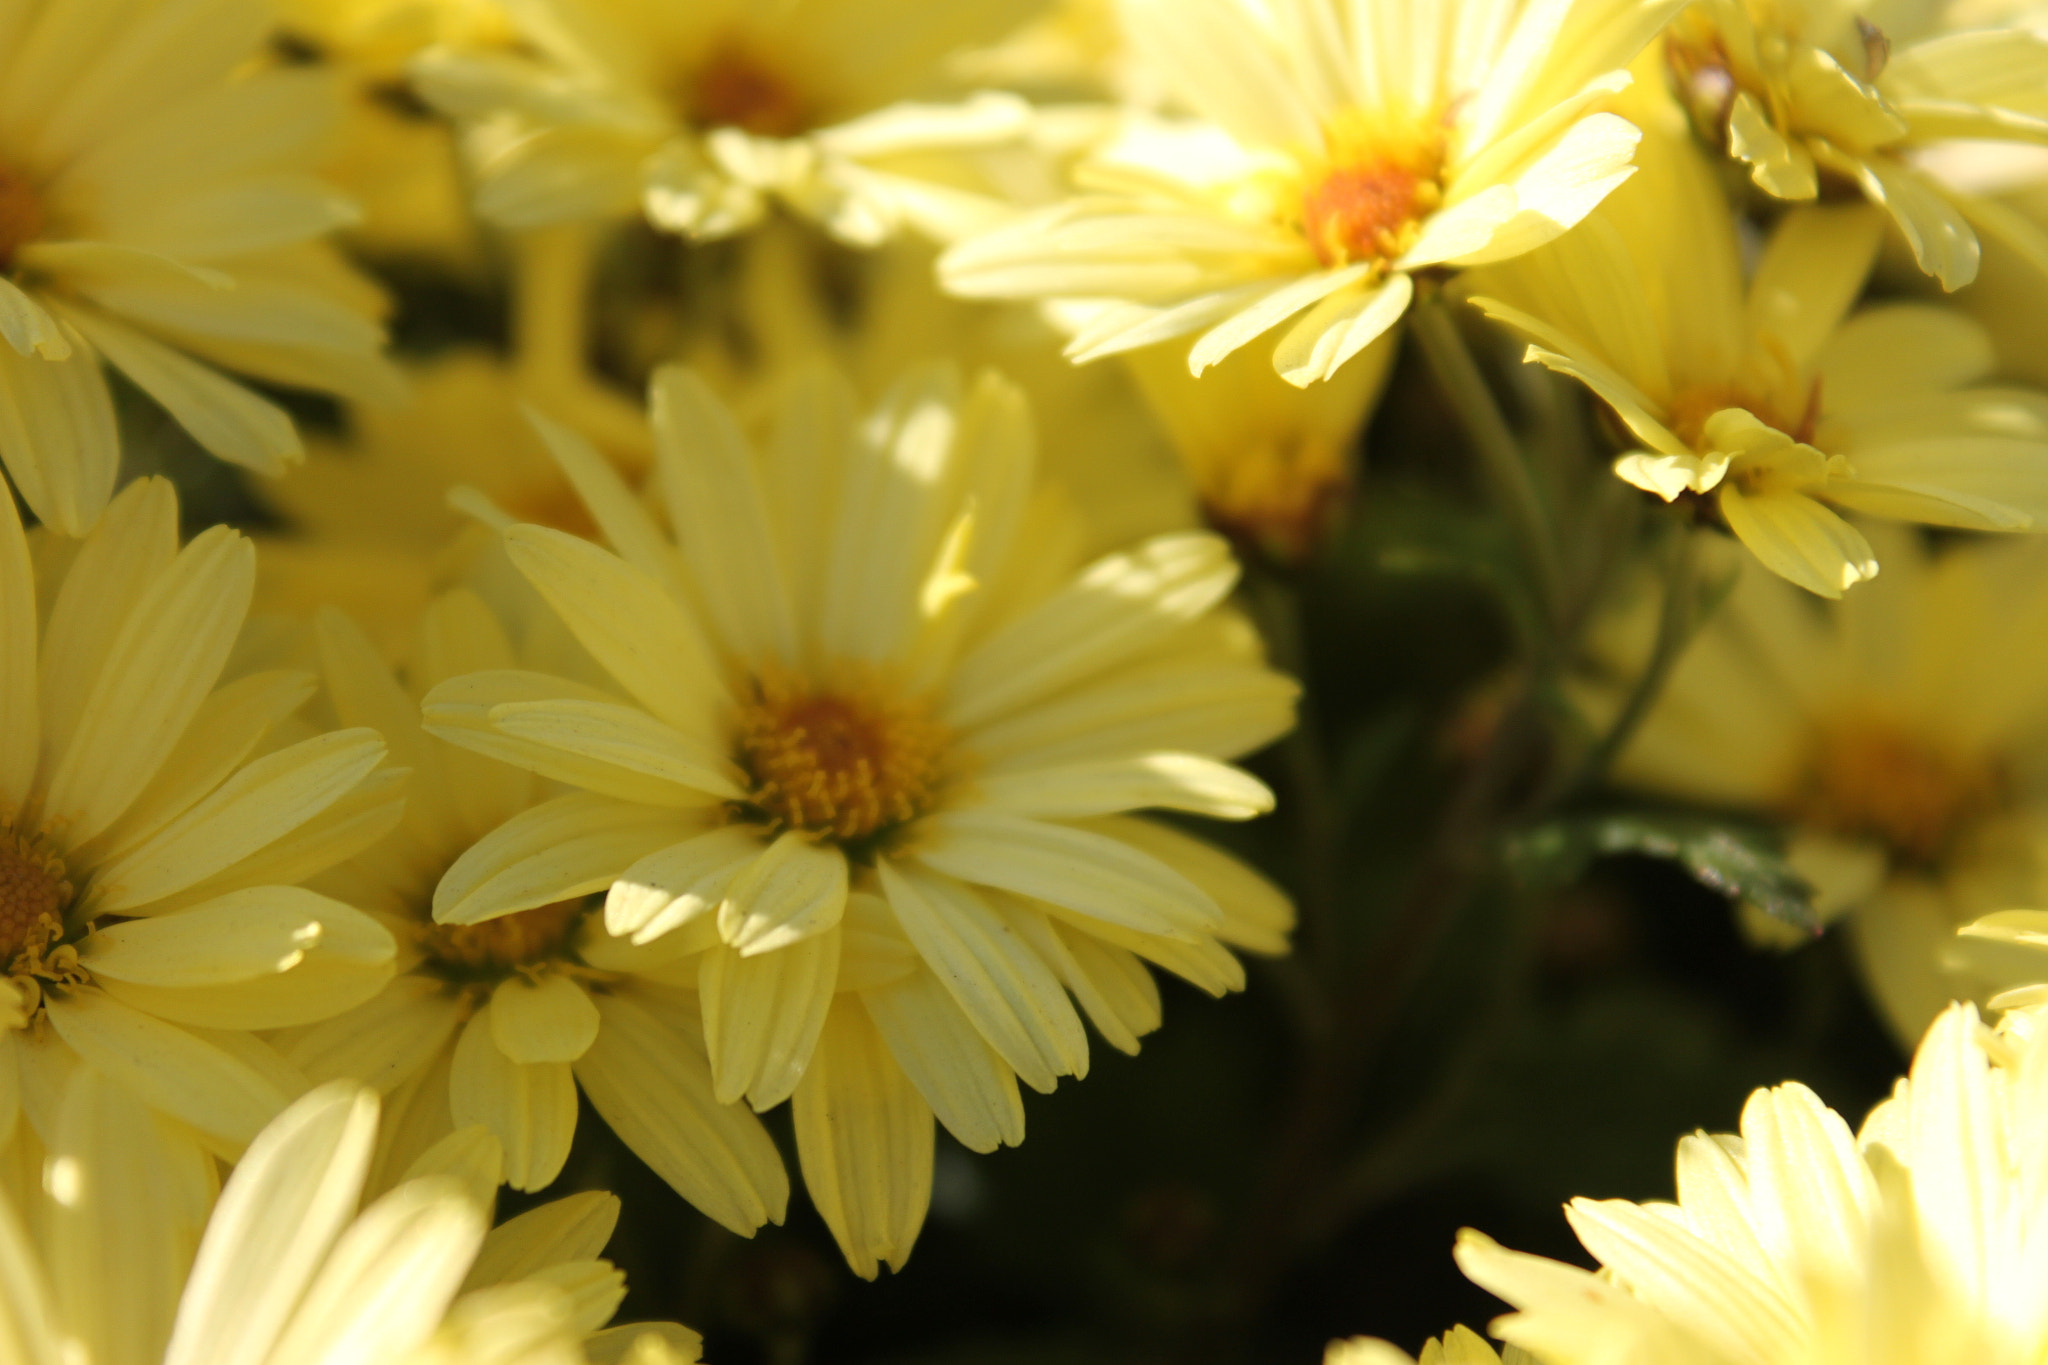 Photograph Camomile by Andrei Dolghier on 500px